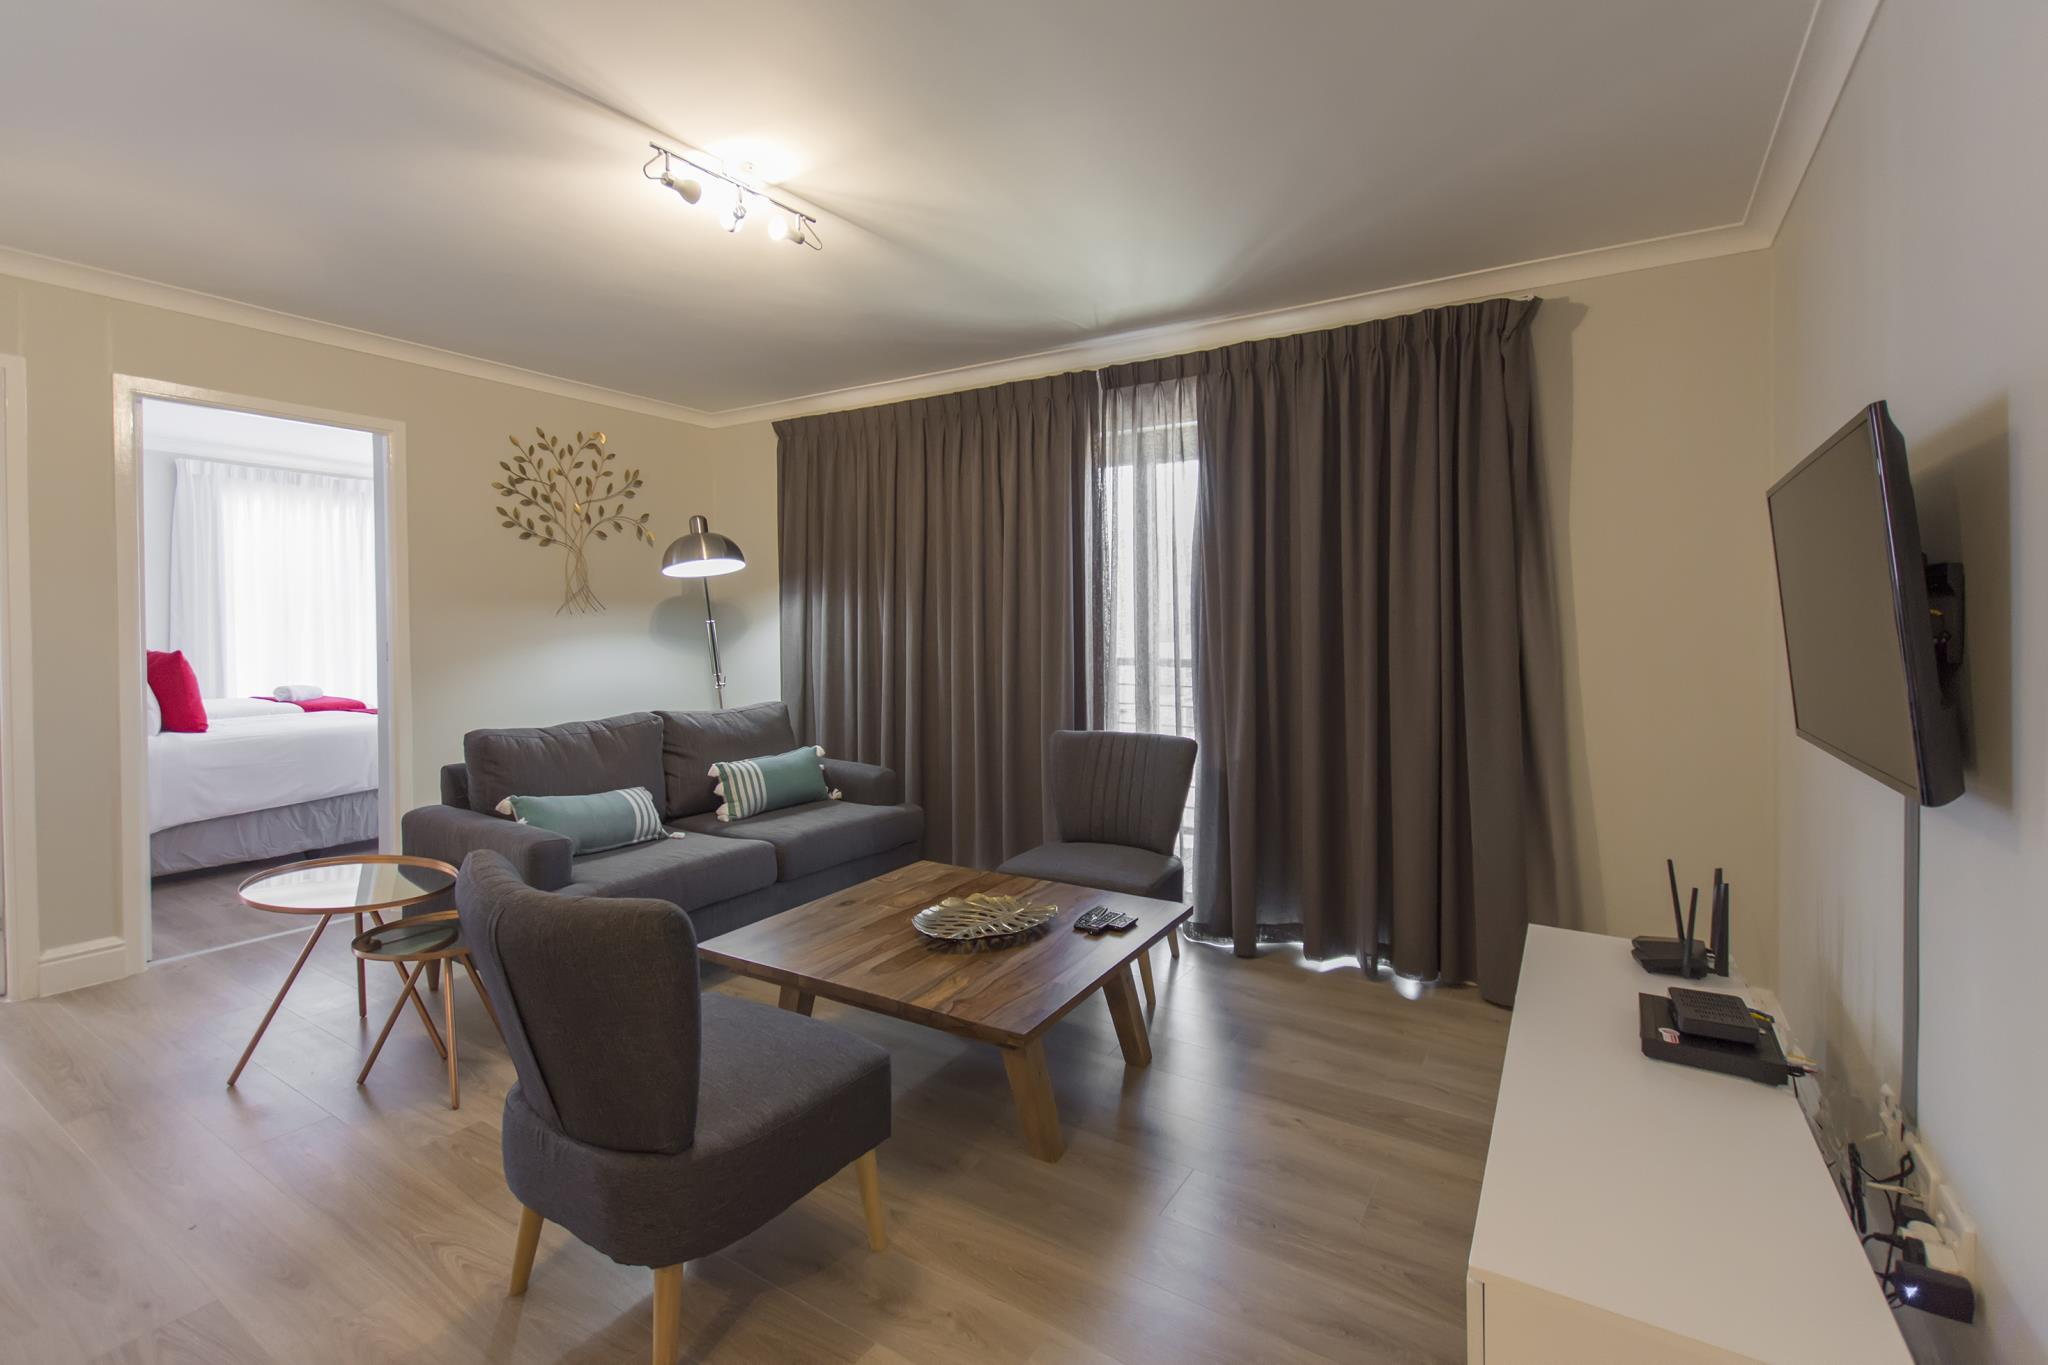 The Paragon Luxury Apartments, City of Cape Town